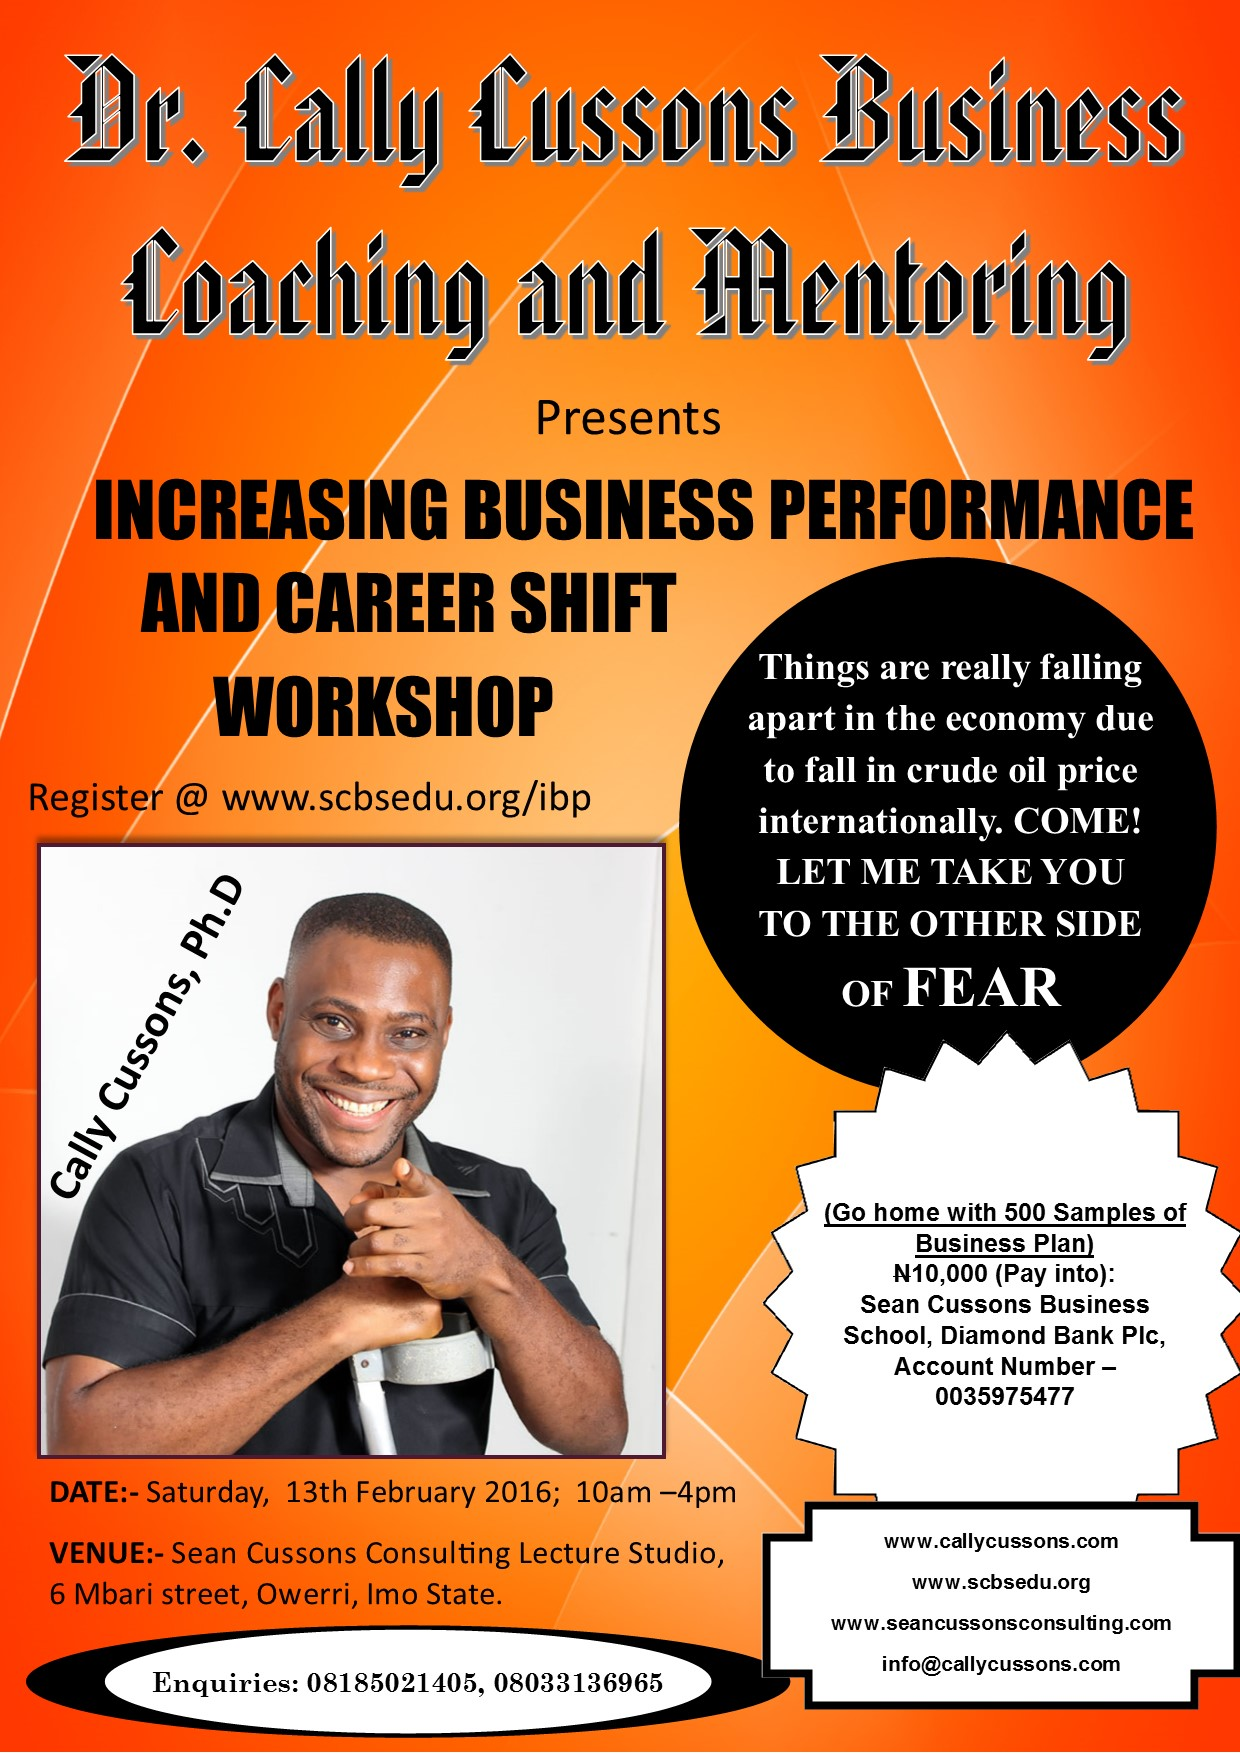 INCREASING BUSINESS PERFORMANCE AND CAREER SHIFT WORKSHOP